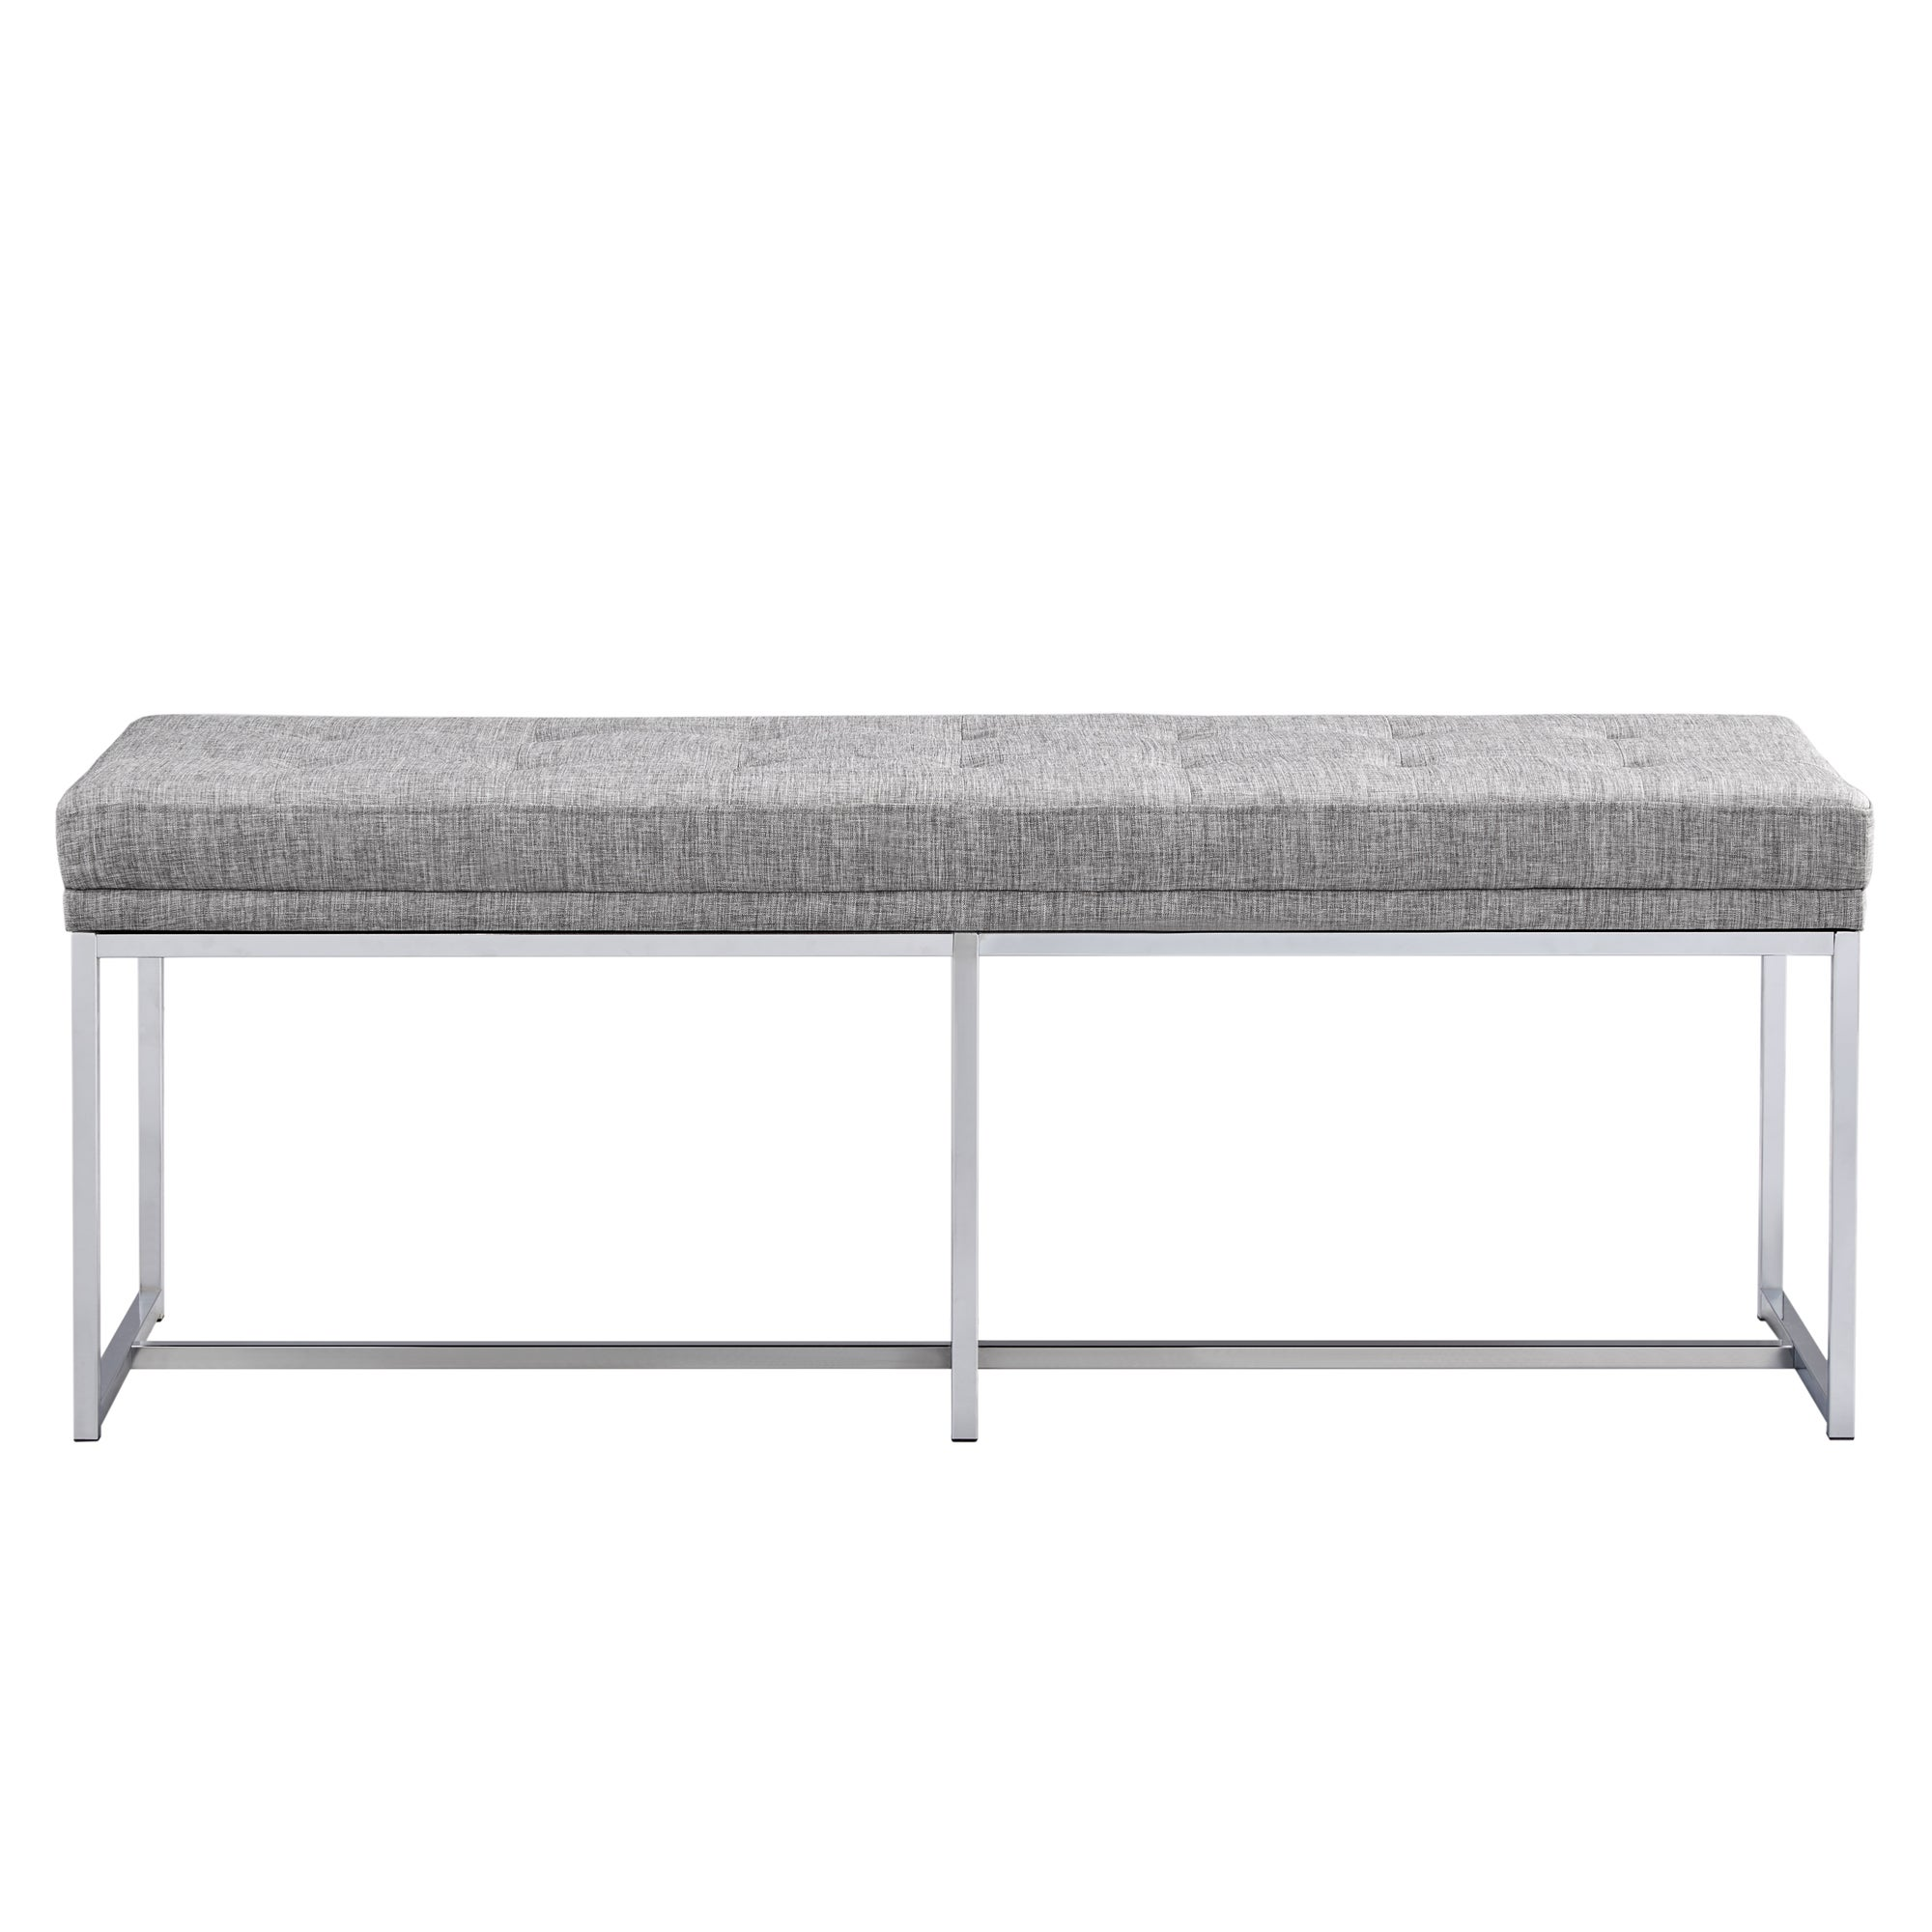 Bryn Chrome Base Bench by iNSPIRE Q Bold - Free Shipping Today -  Overstock.com - 23317488